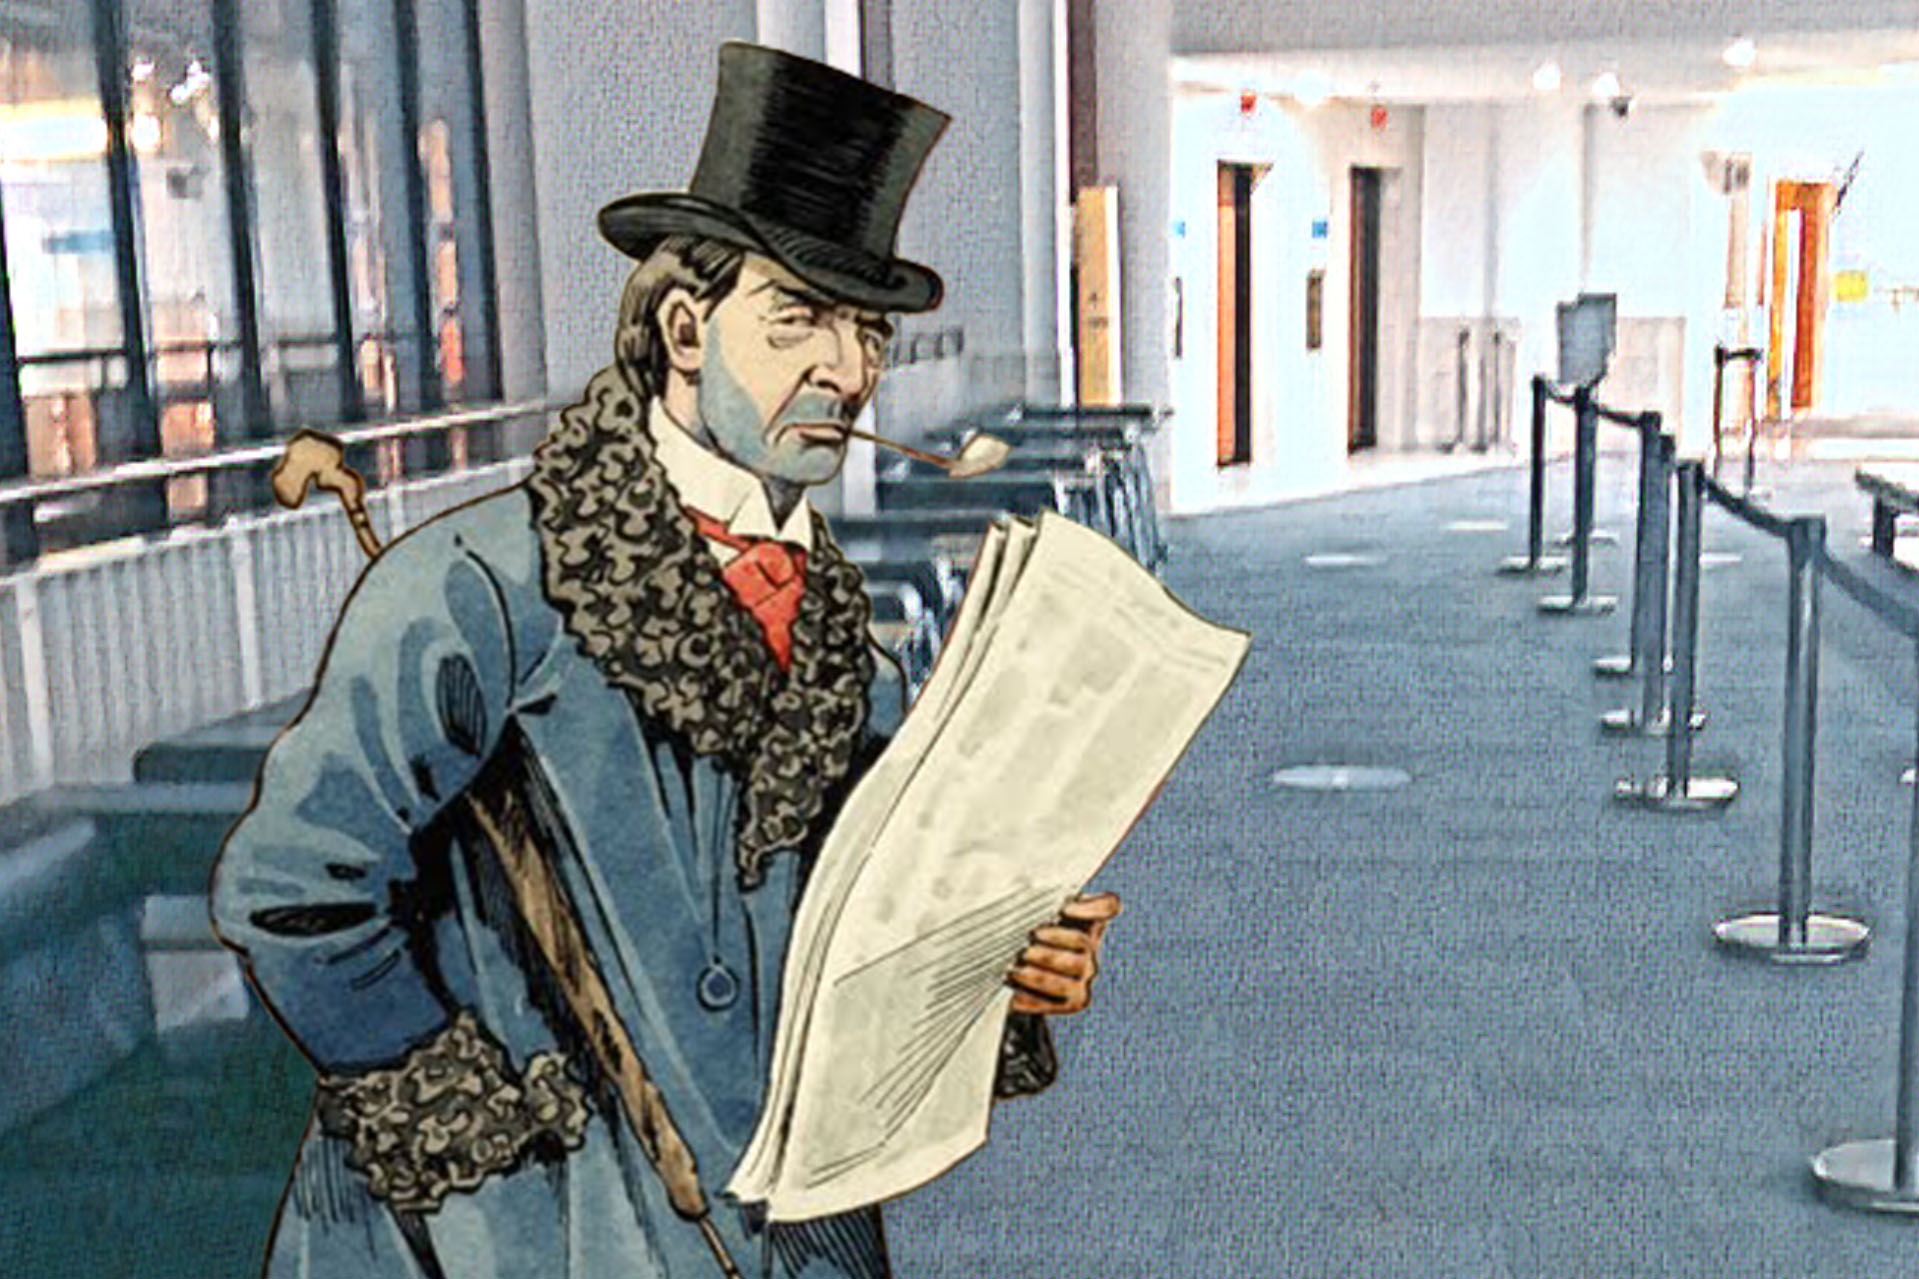 """John Clayton Clark's """"A Reader of the Era"""" (c1900) in the British Library"""